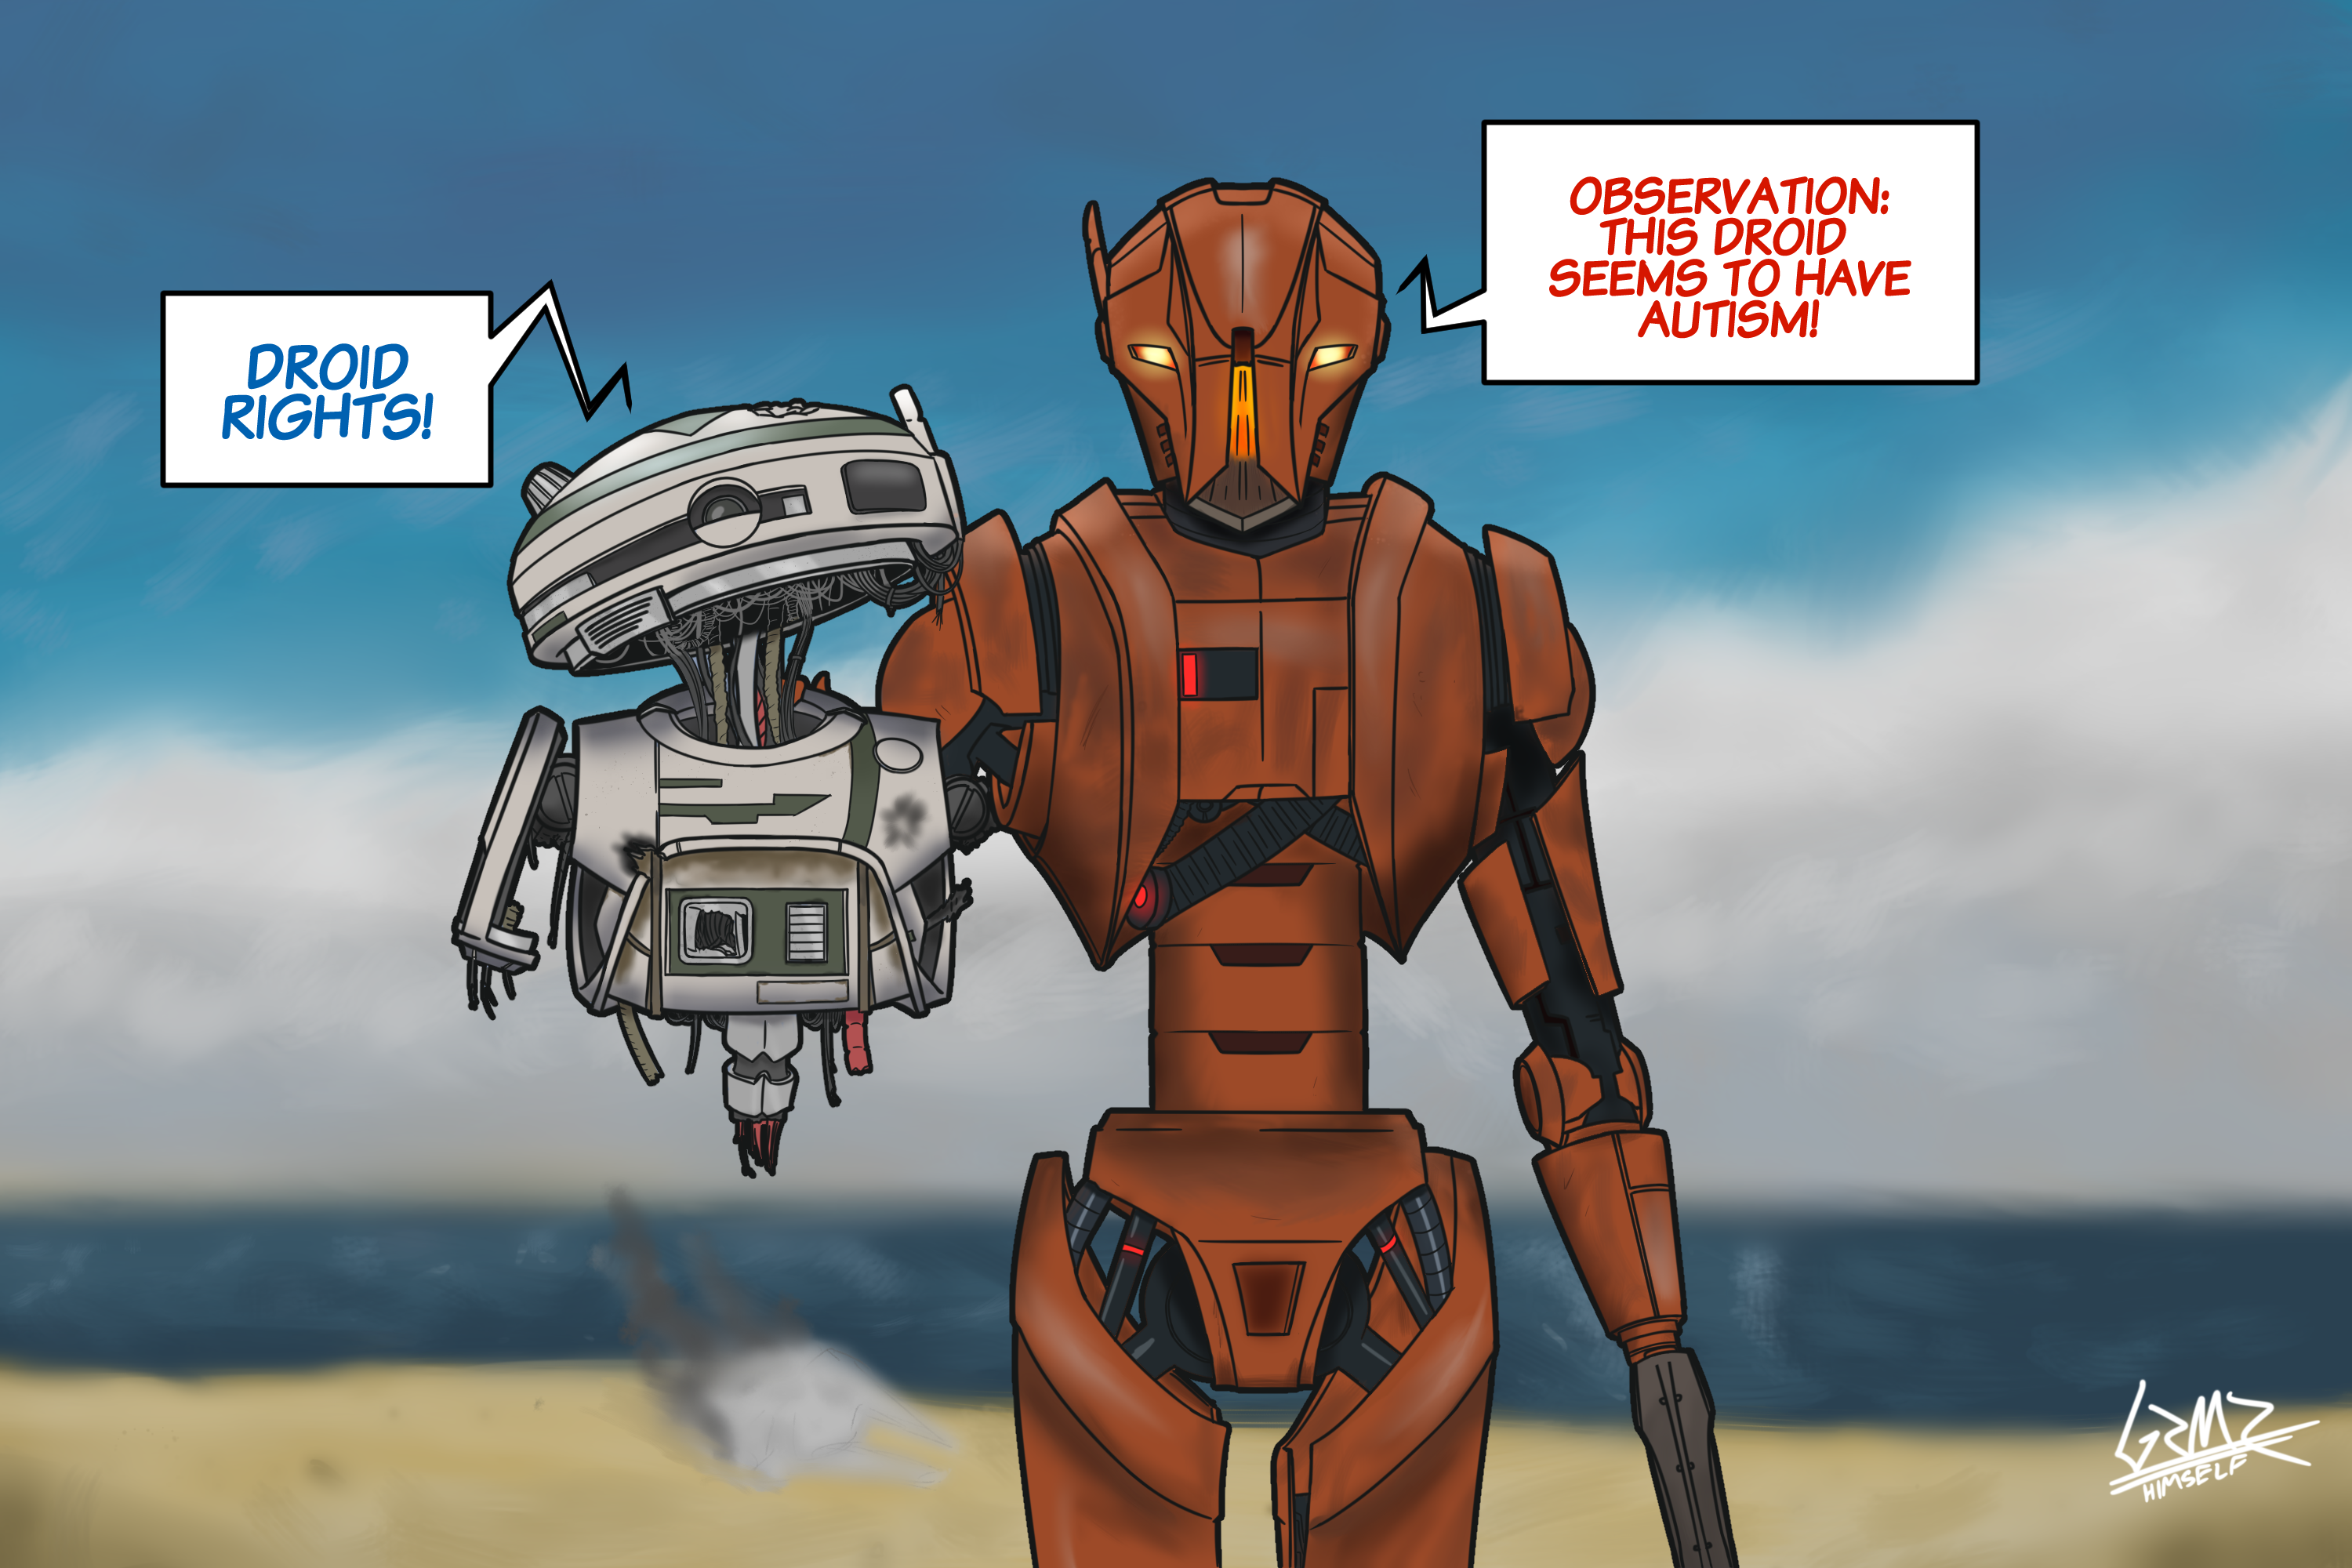 Droid rights!